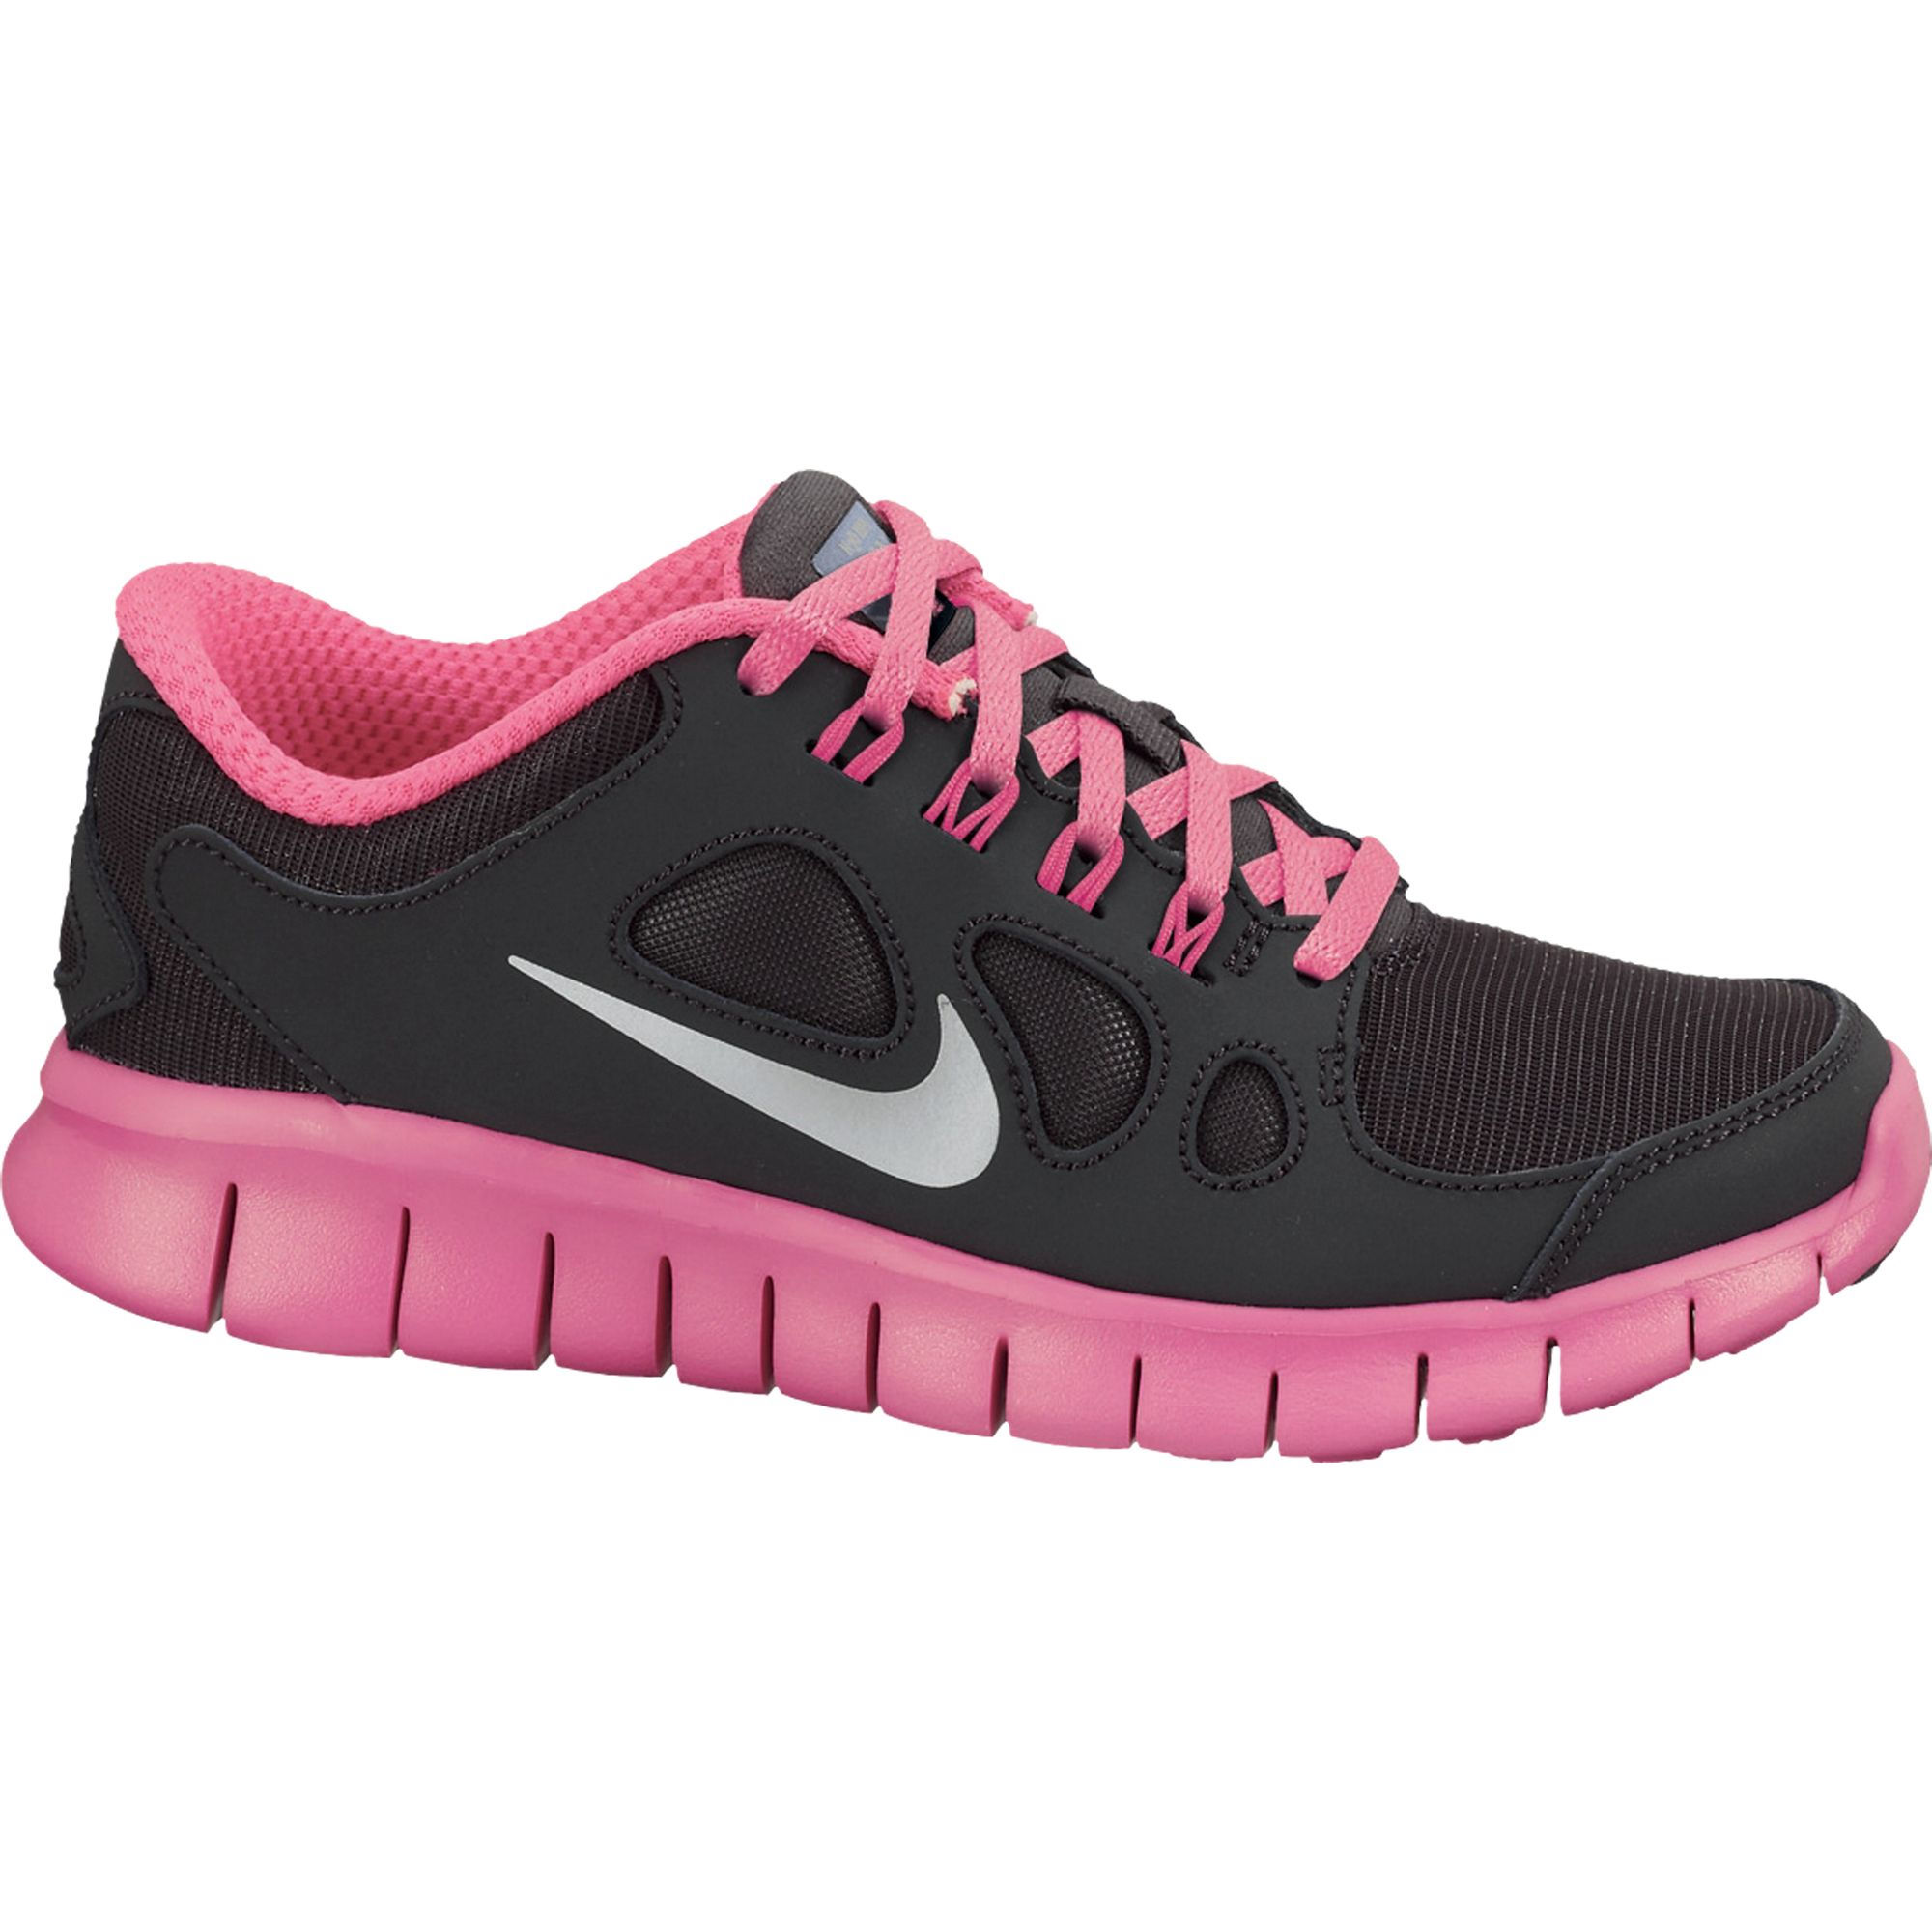 393d8edf8752d6 nike sneakers on sale for women on craigslist free